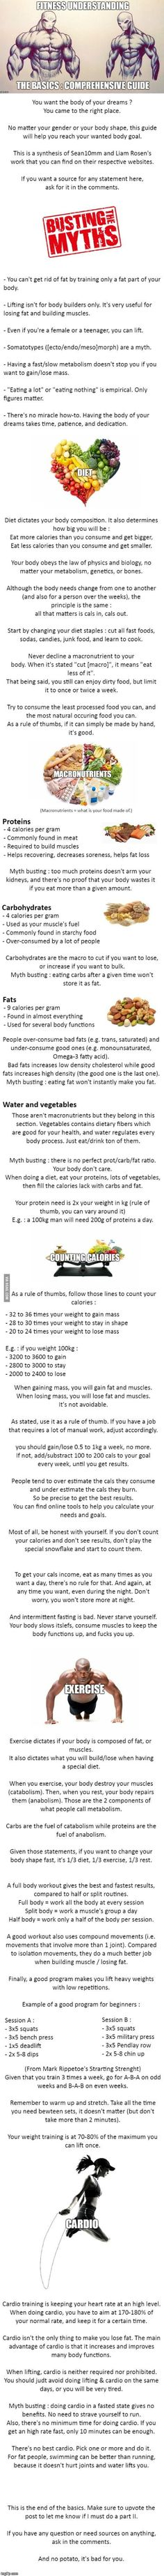 Basics of working out. - 9GAG